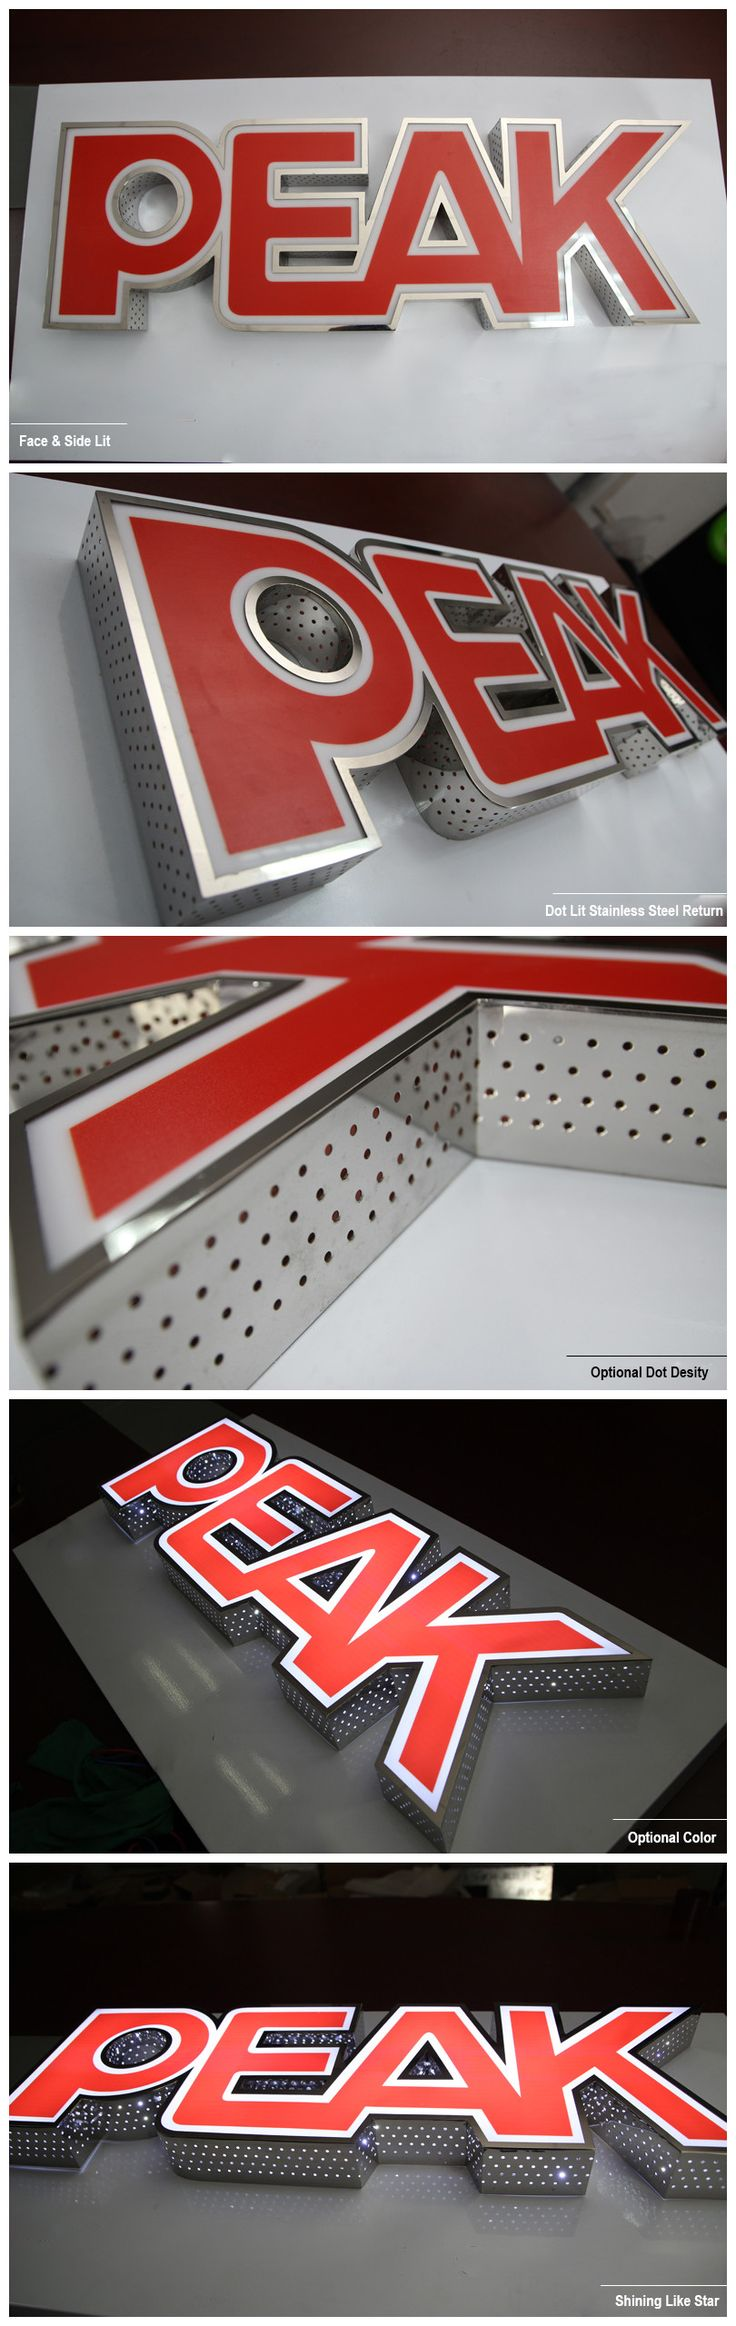 Dot Acrylic Illuminated Channel Letter Sign More